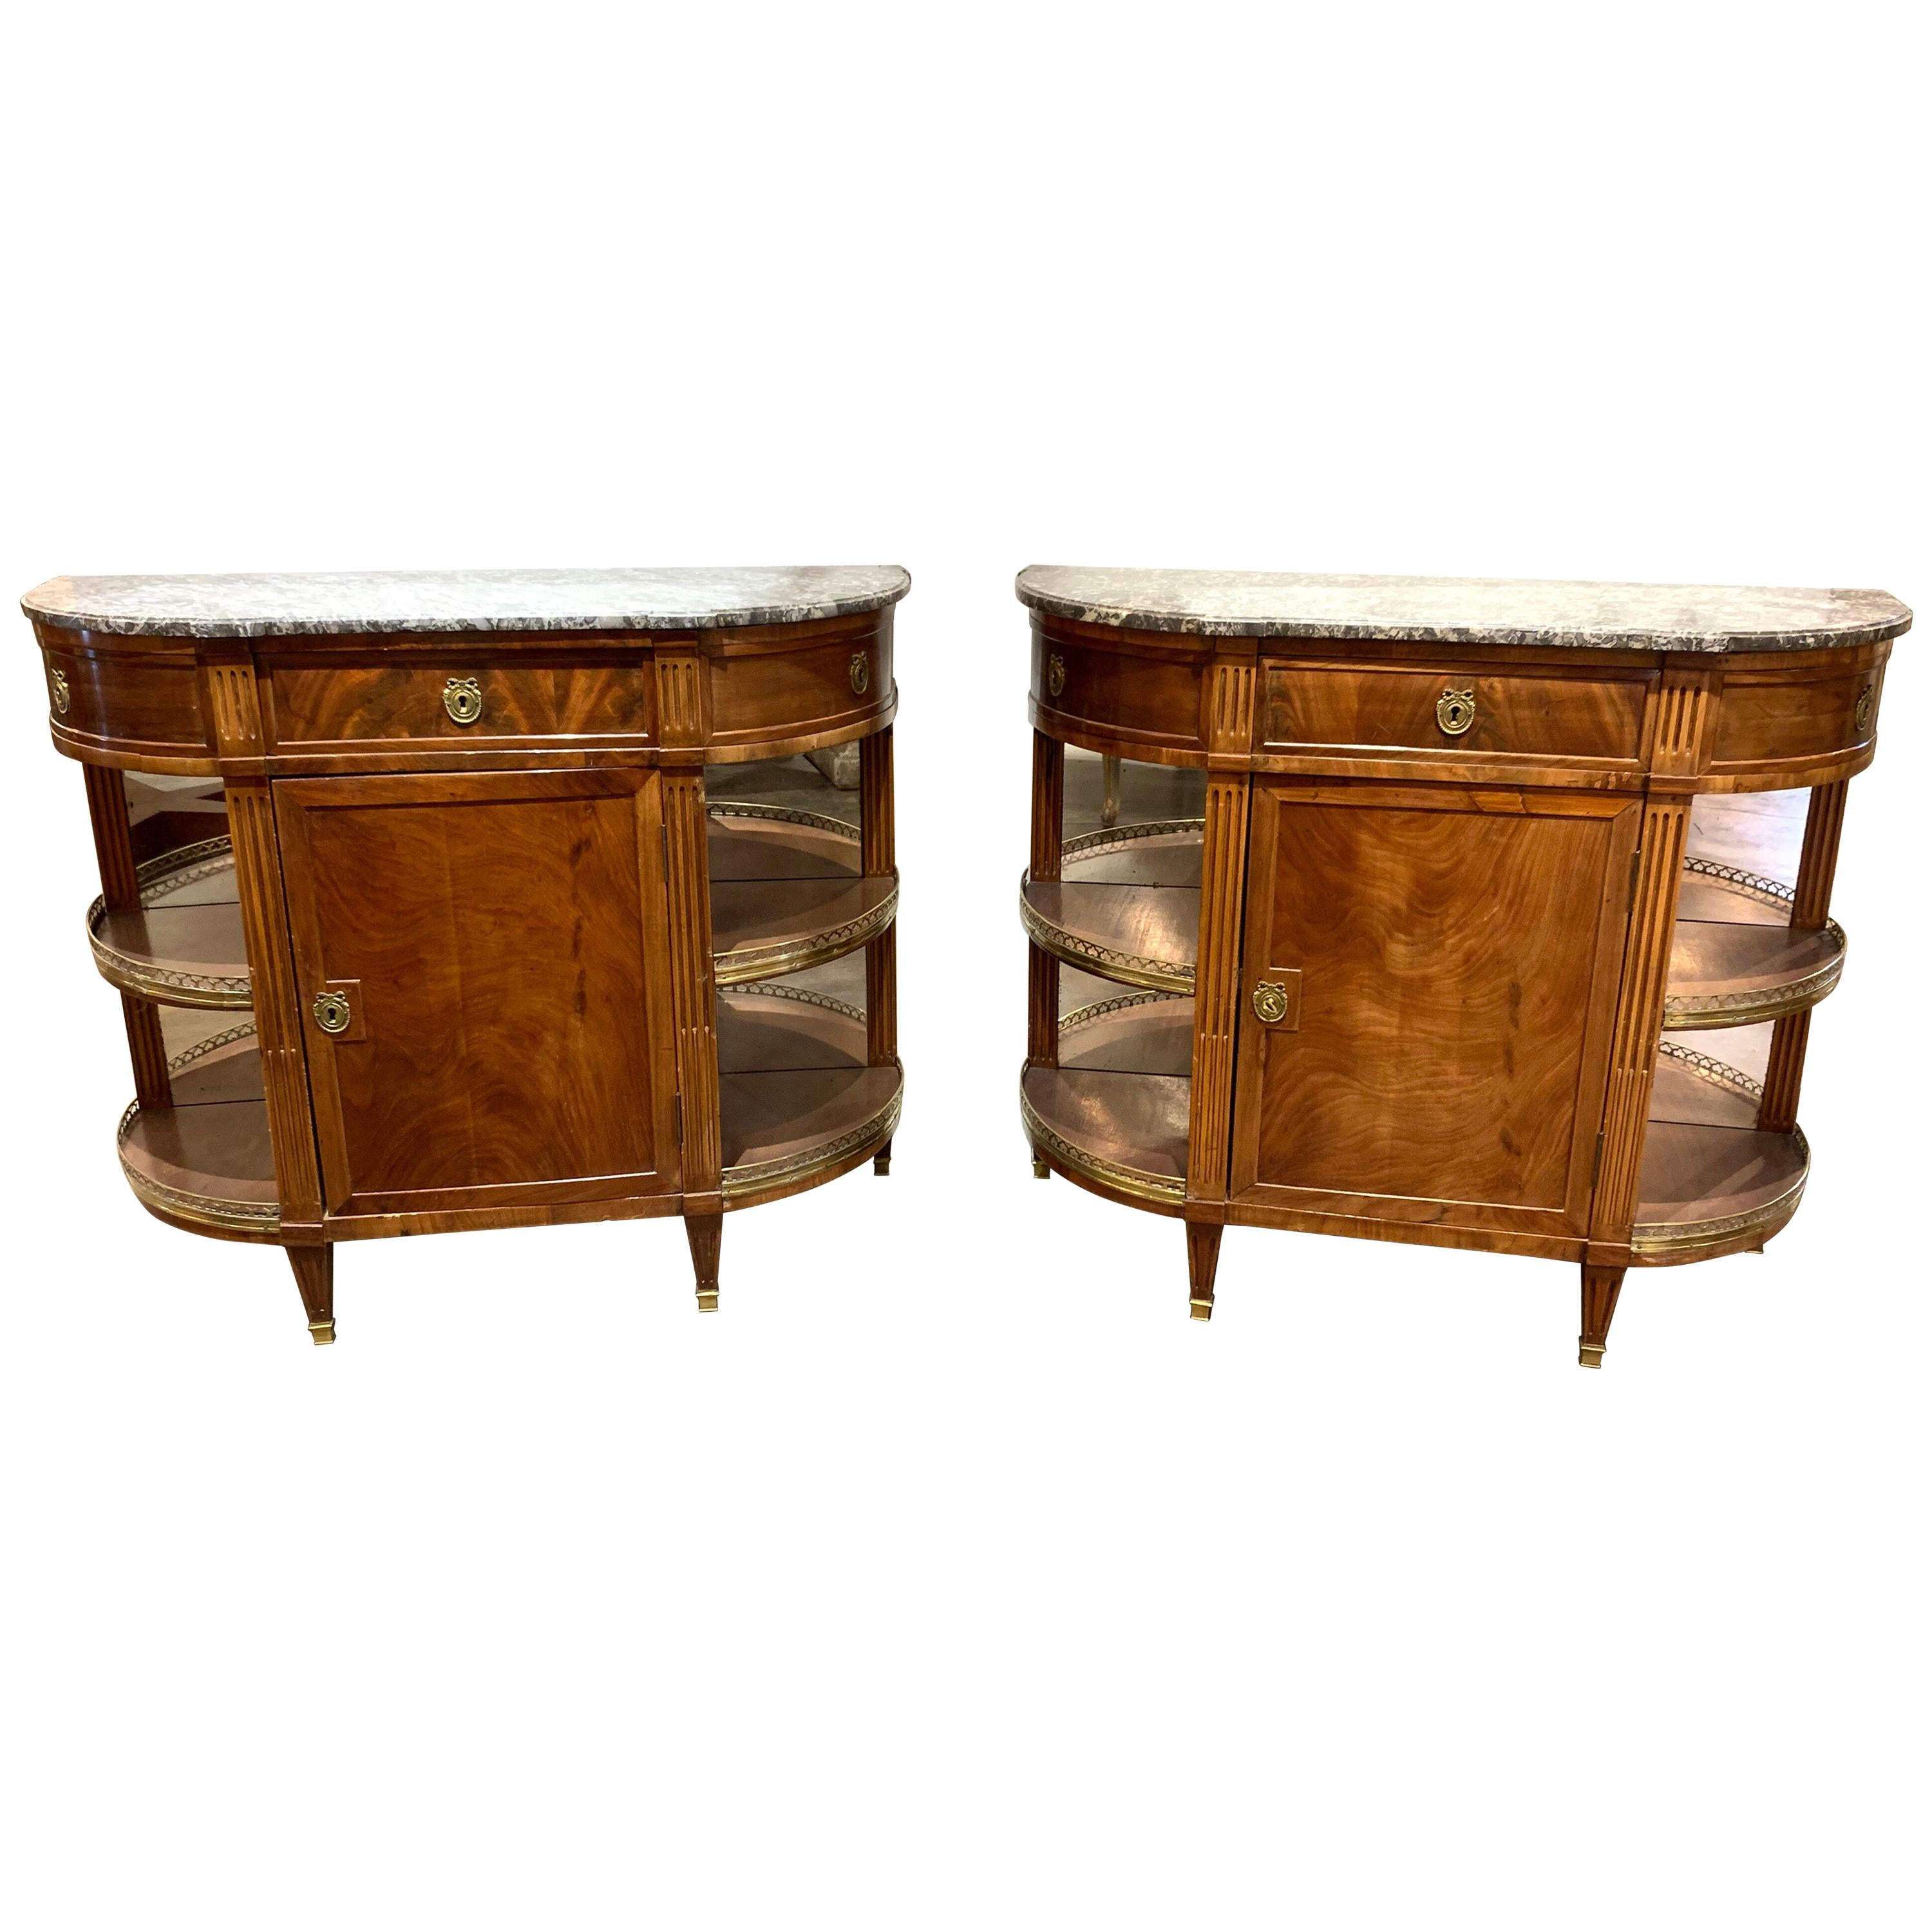 Pair of French Directoire Style Mahogany Servers with Marble Tops